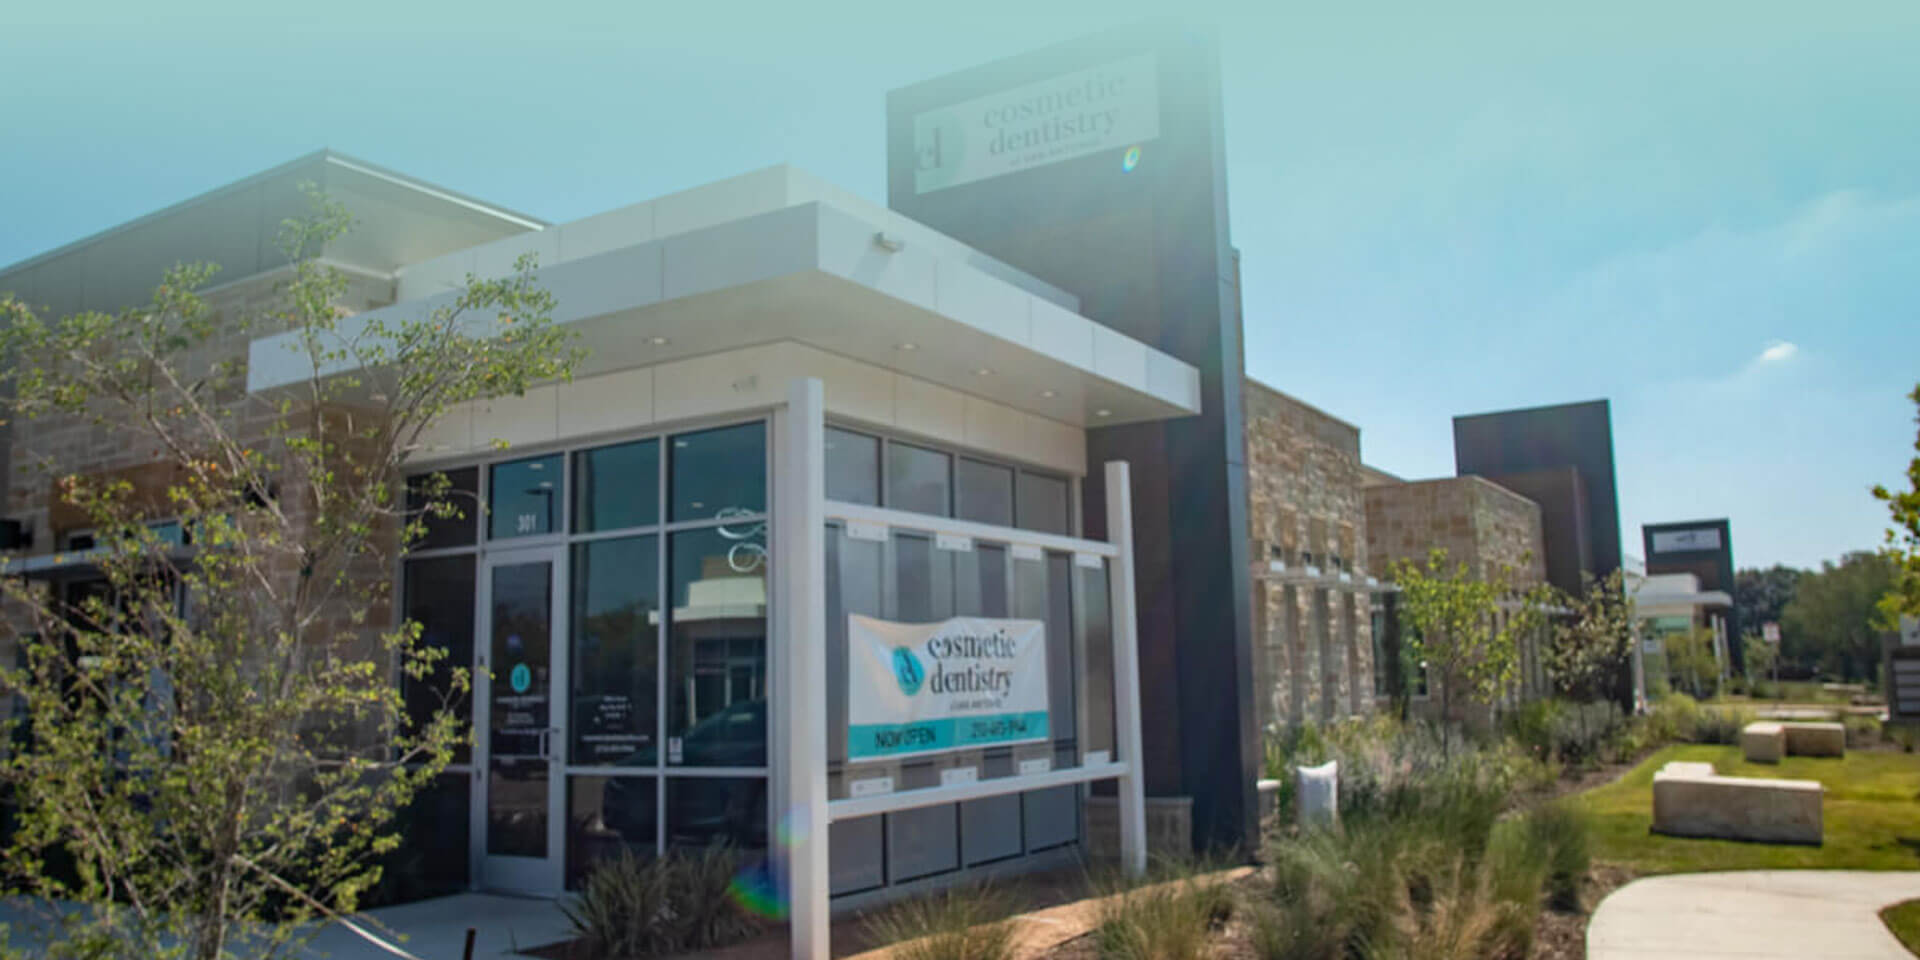 Exterior view at Cosmetic Dentistry of San Antonio